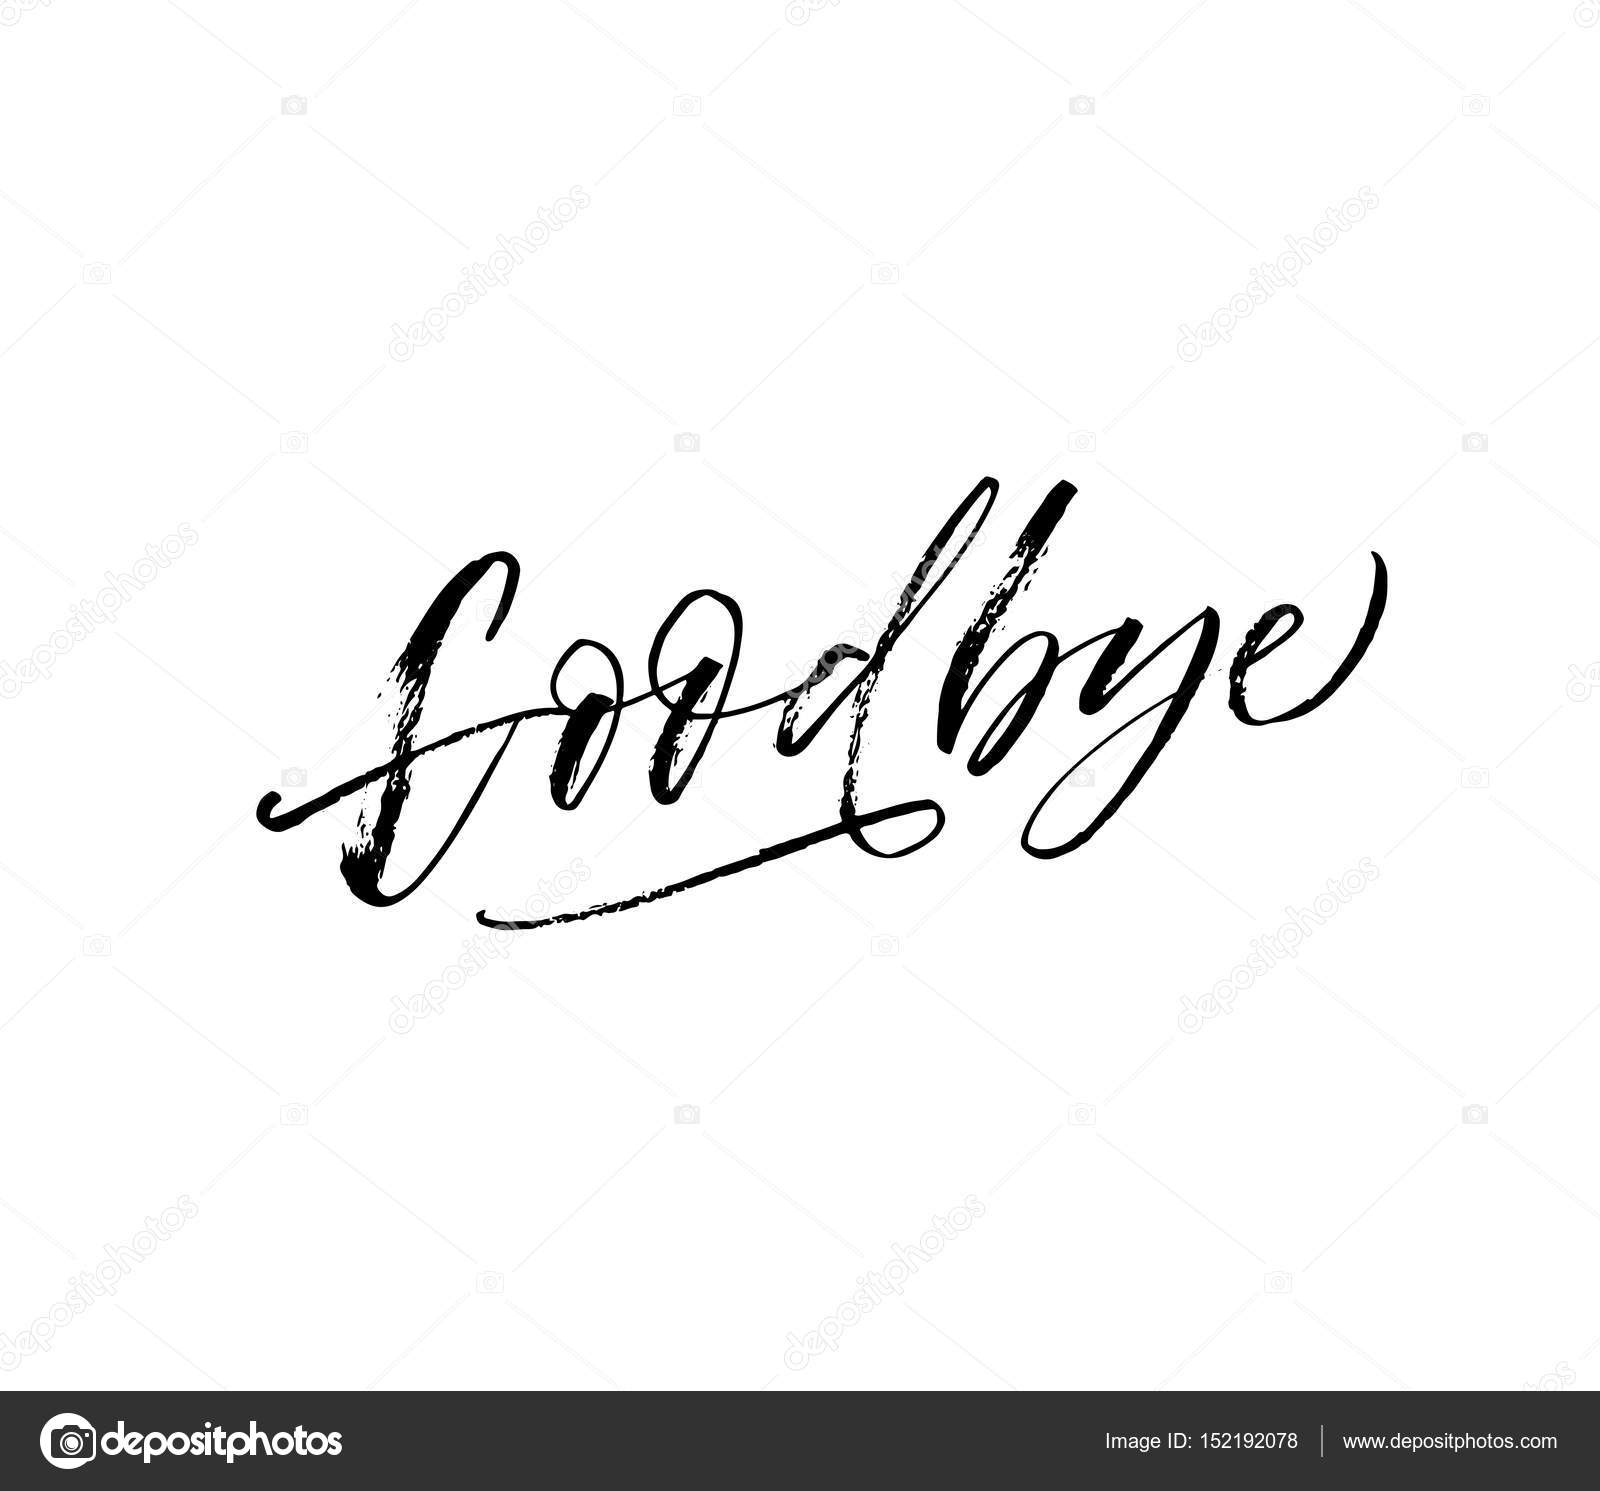 Goodbye hand drawn lettering — Stock Vector © gevko93